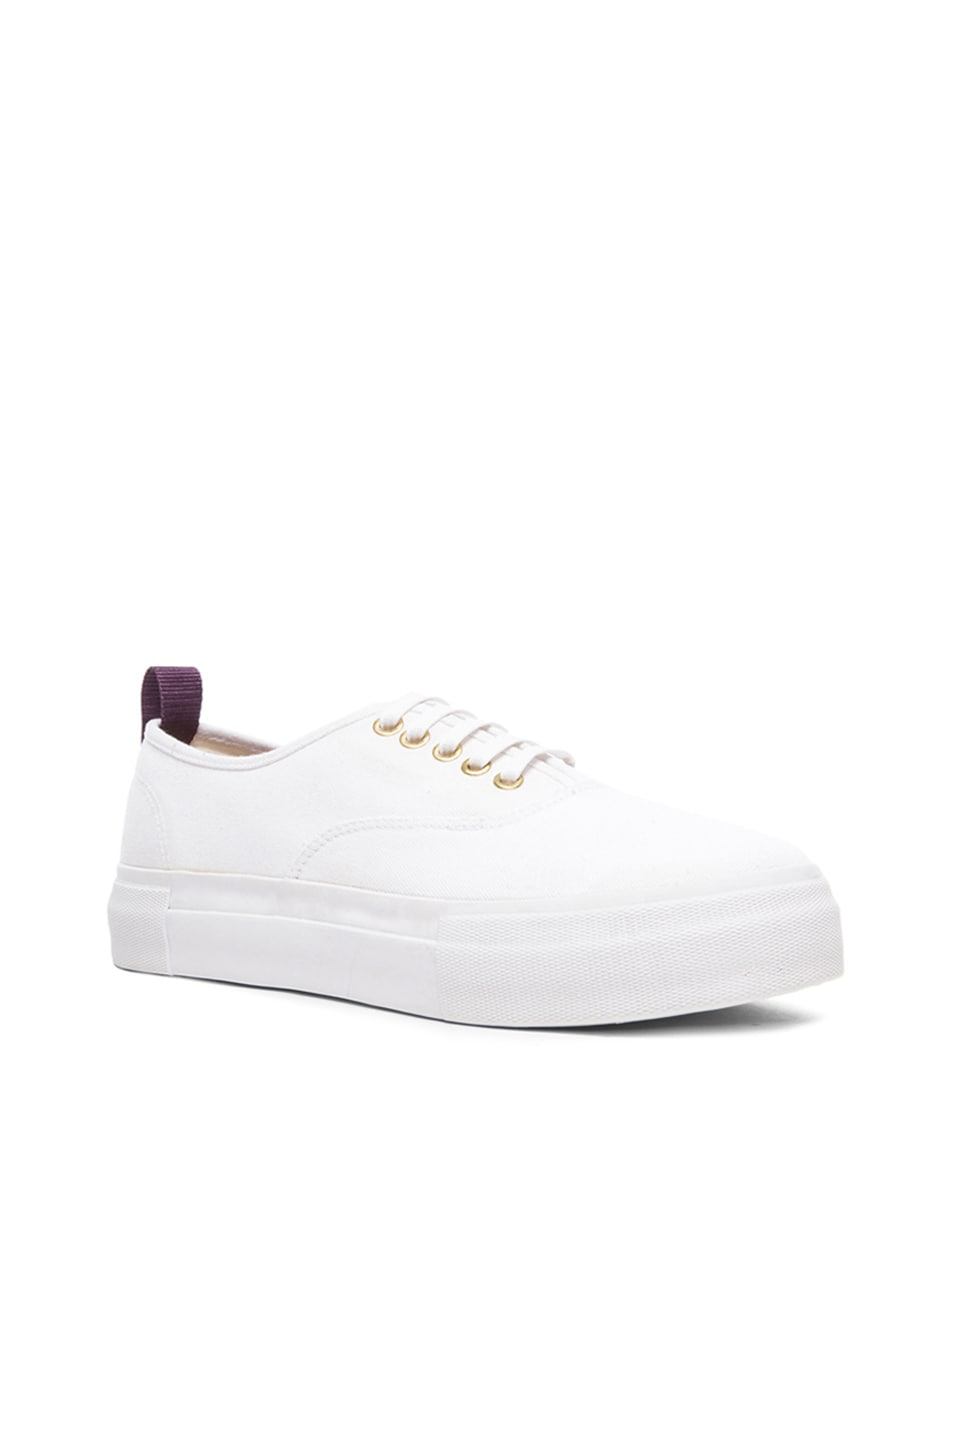 EYTYS Mother Low-Top Canvas Trainers in White